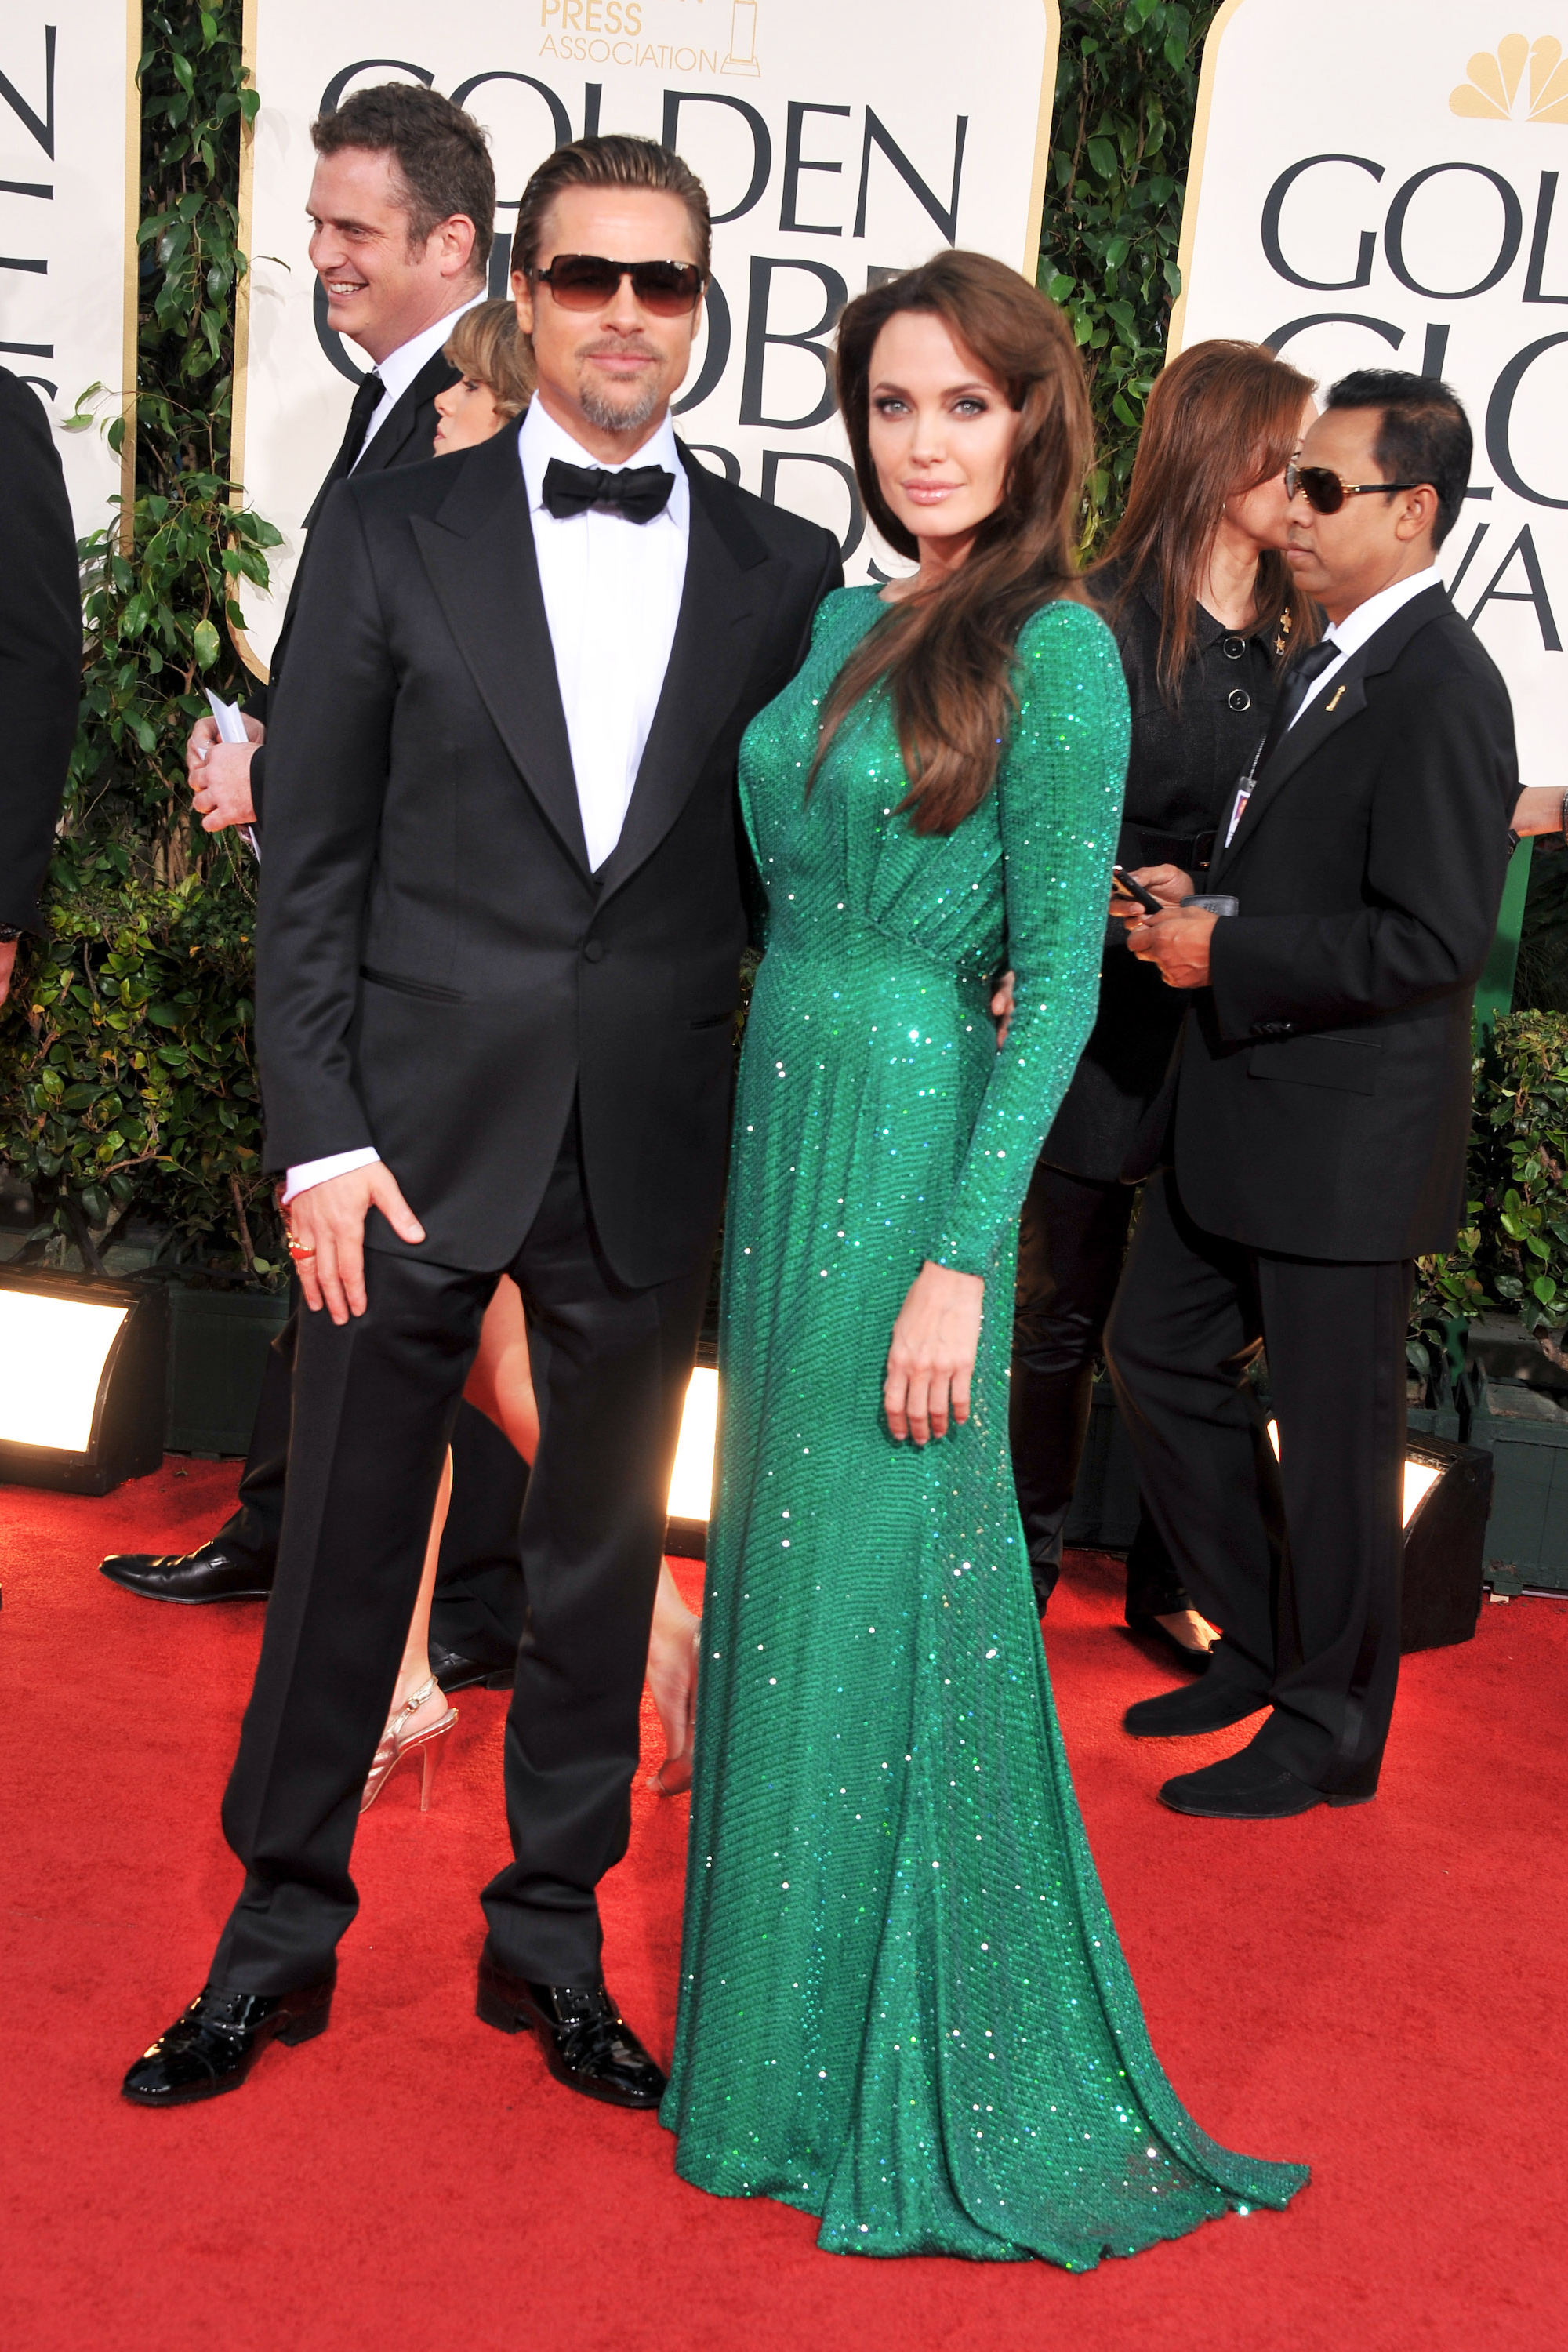 Brad Pitt and Angelina Jolie arrive at the 68th Annual Golden Globe Awards on Jan. 16, 2011 in Beverly Hills, Calif.